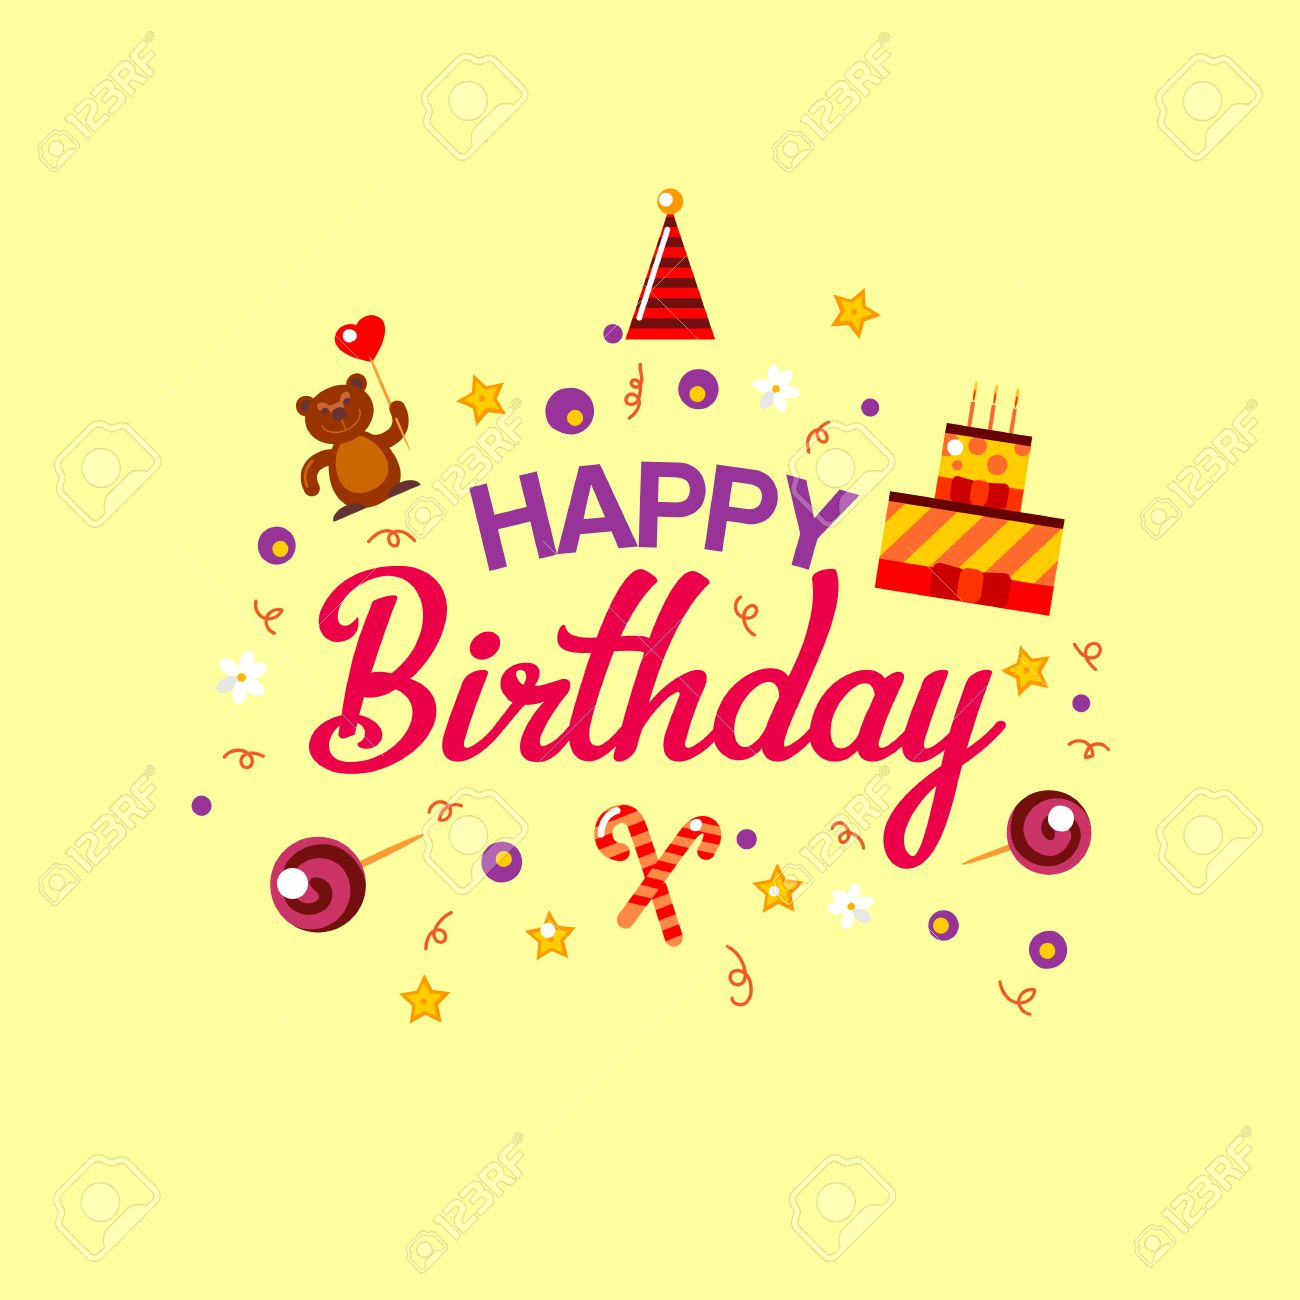 Happy Birthday Gift Card Cake And Toys Vector Illustration Kids